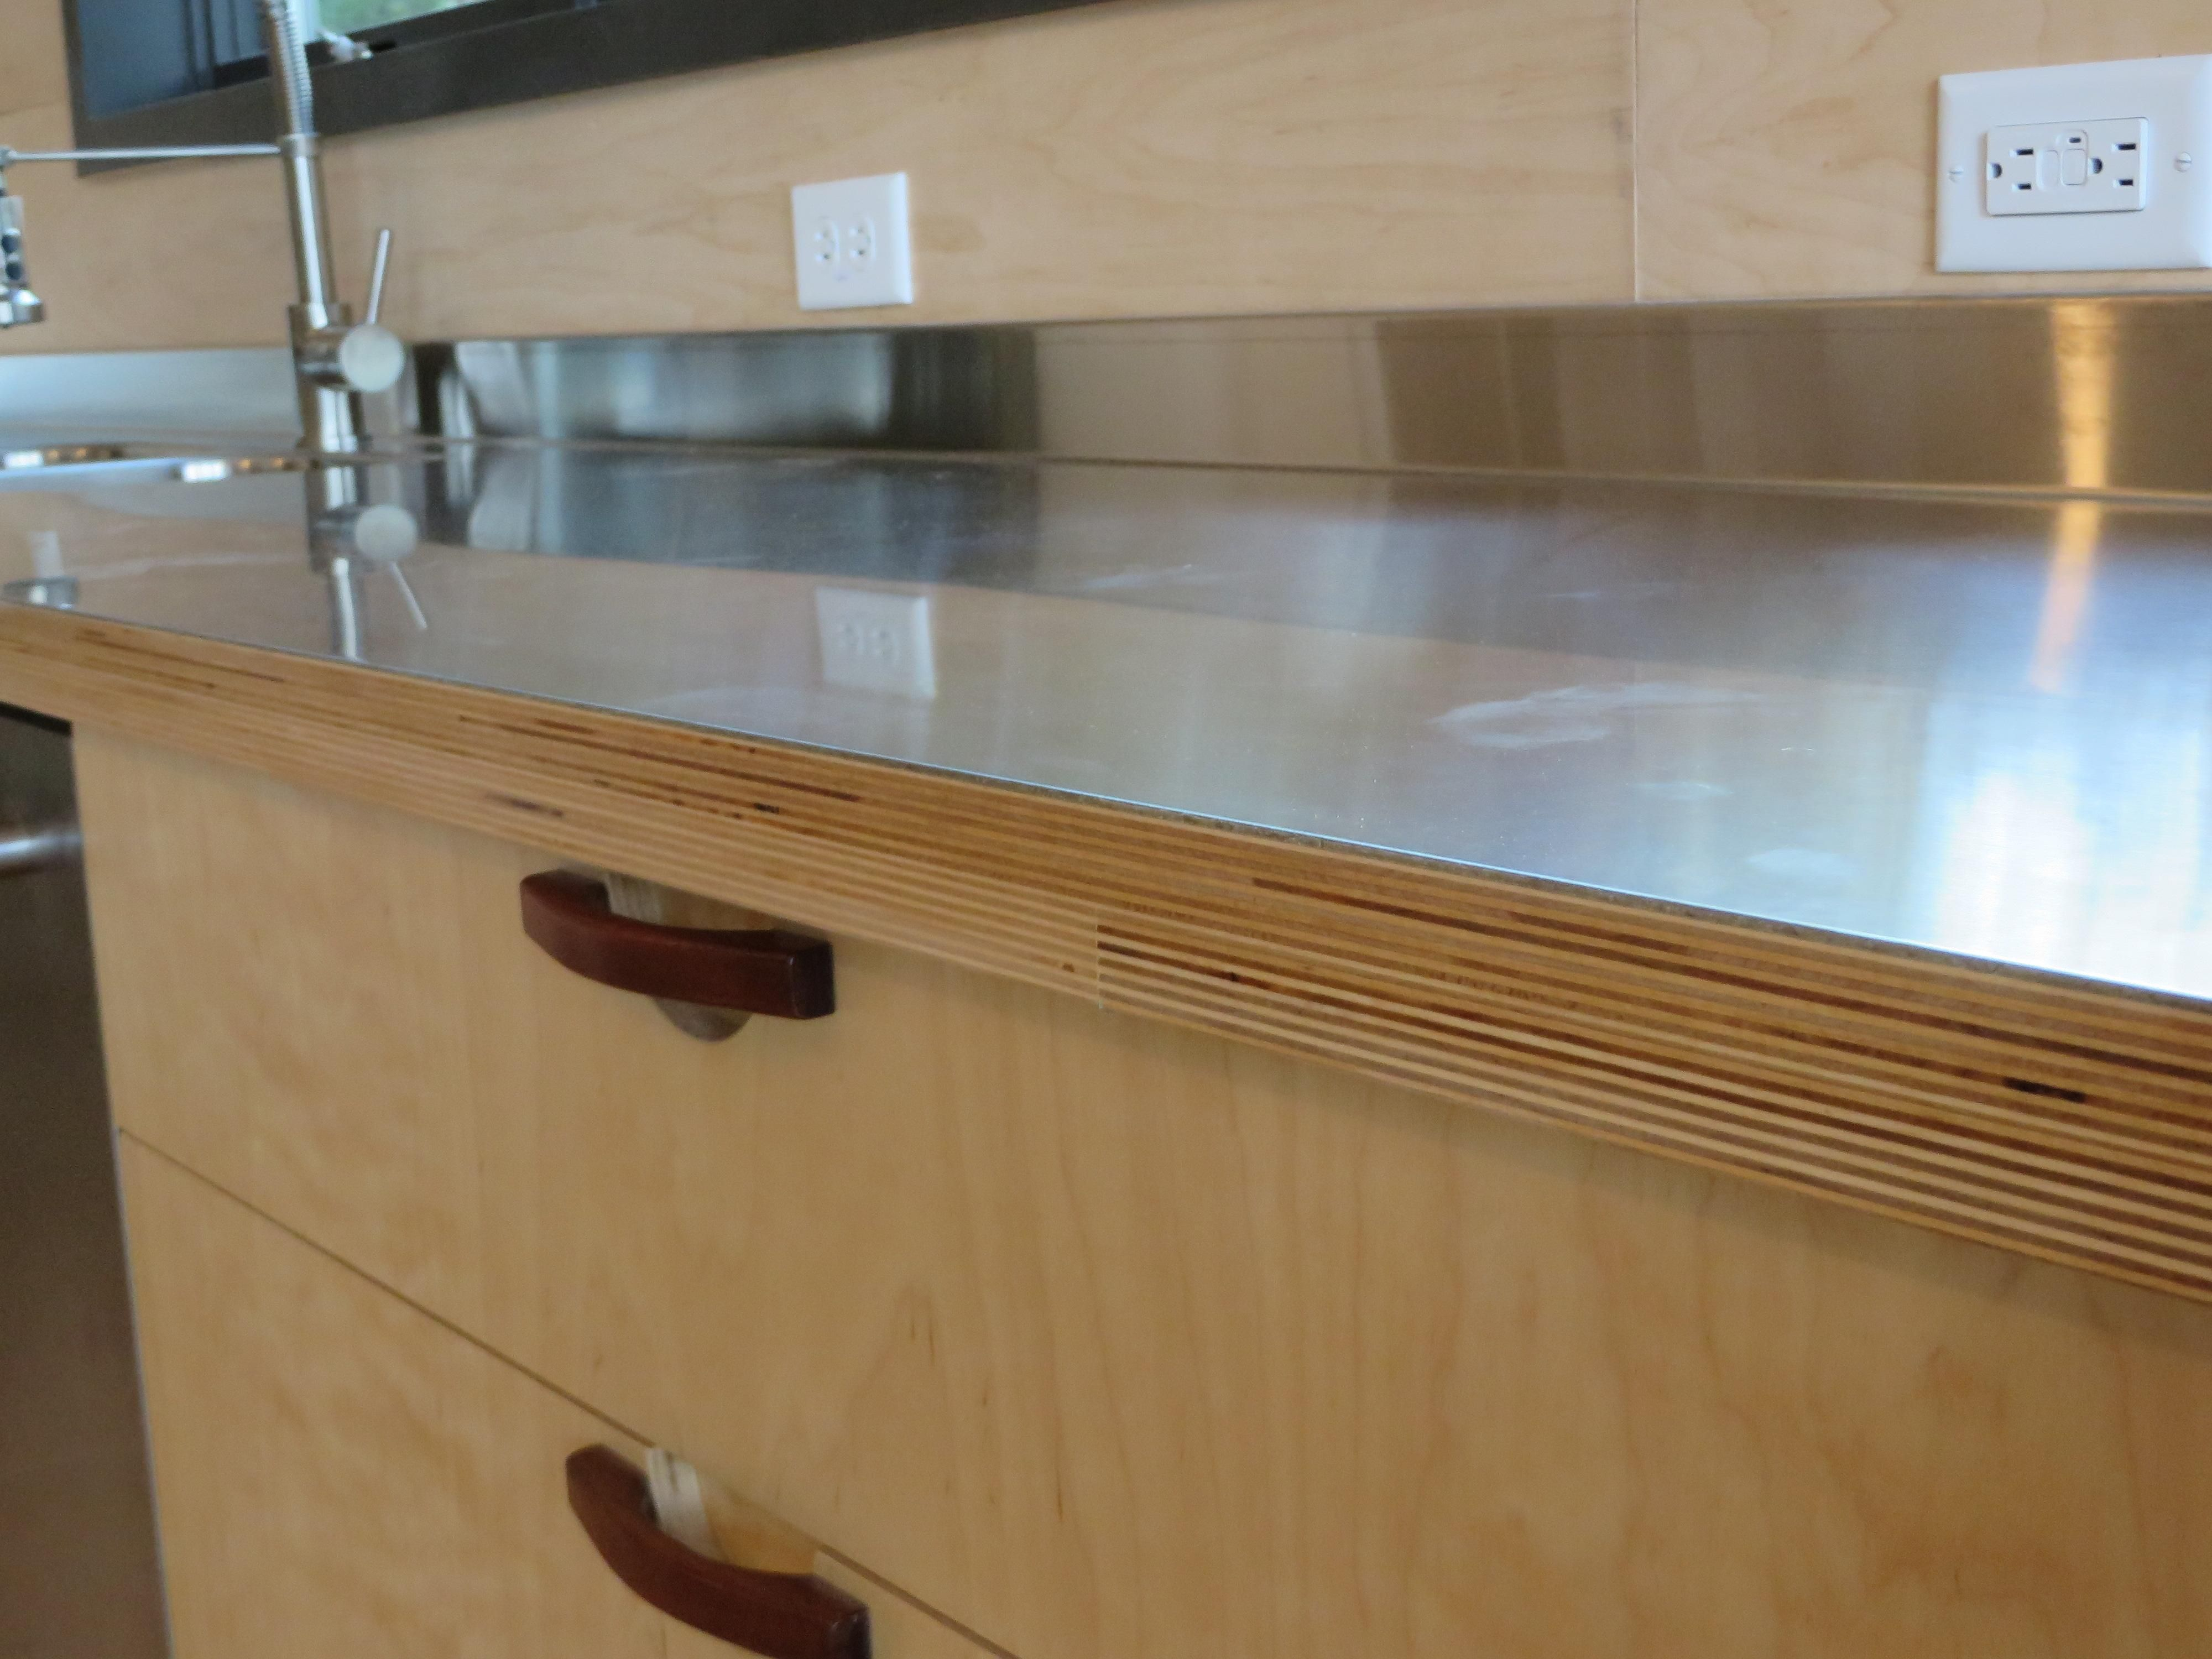 stainless steel table top stainless steel kitchen countertops Stainless steel laminated to baltic birch WOODWEB s Laminating and Solid Surfacing Forum